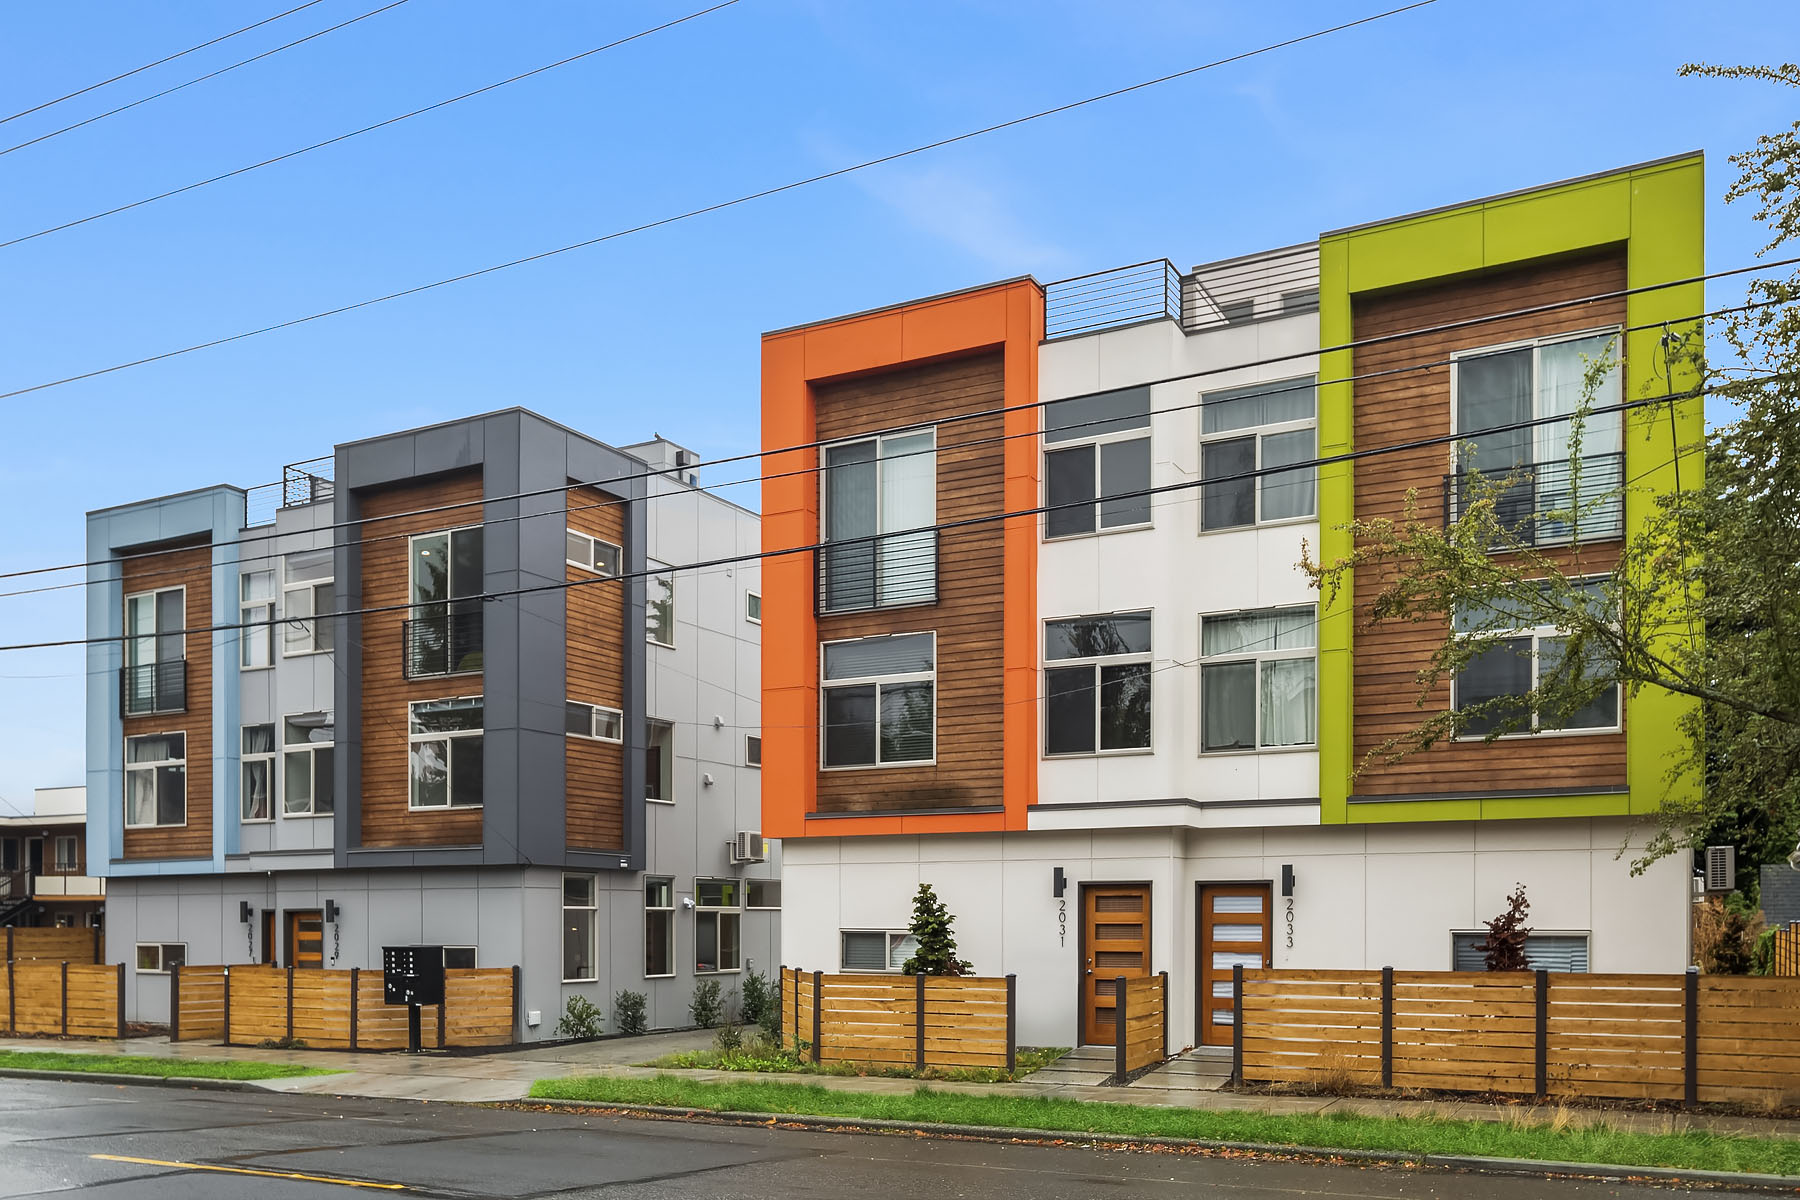 *2029 NW 65th St., Seattle | $740,000